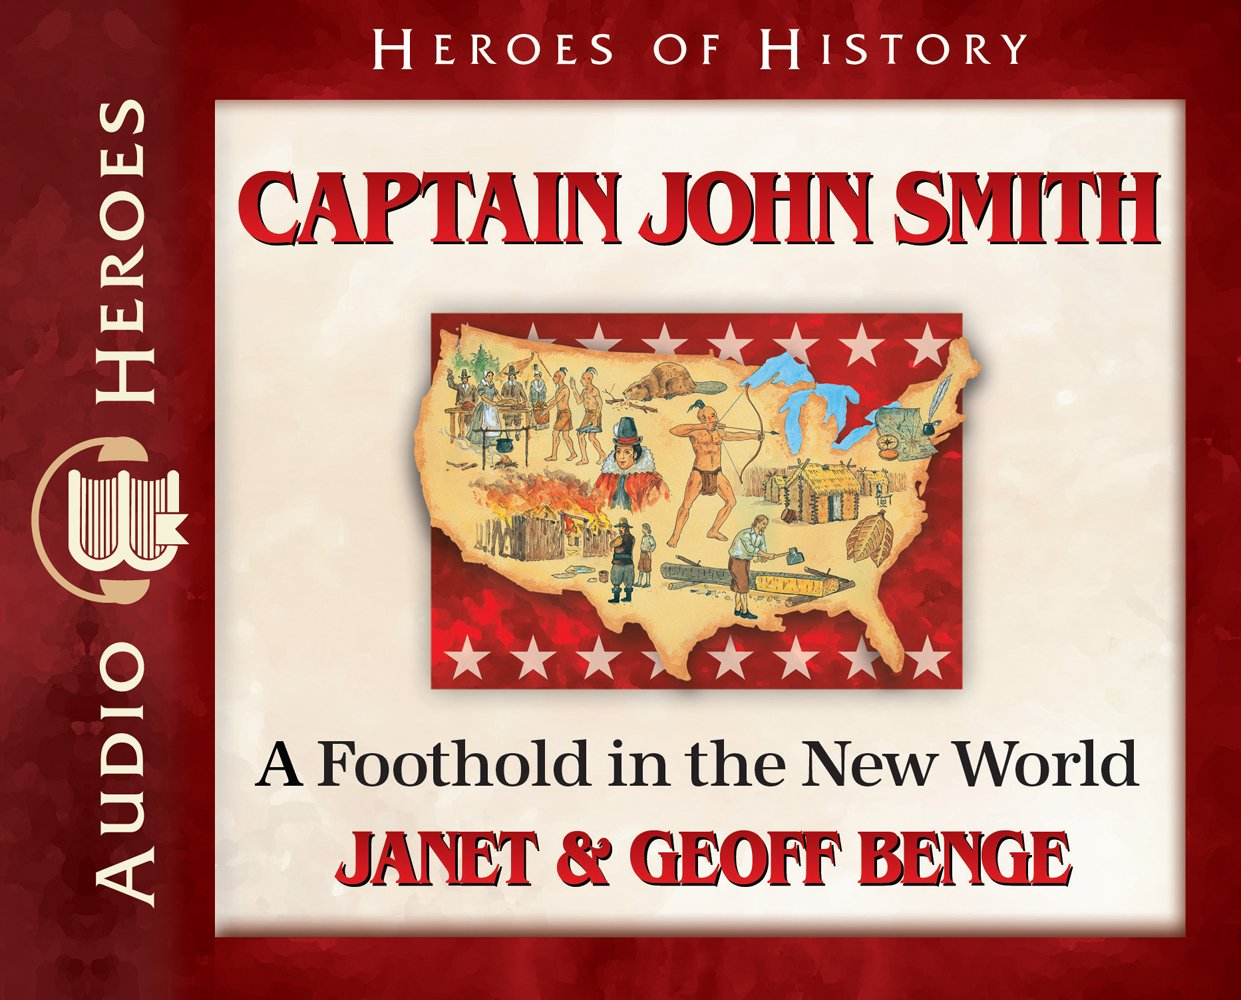 Captain John Smith Audiobook: A Foothold in the New World (Heroes of History)